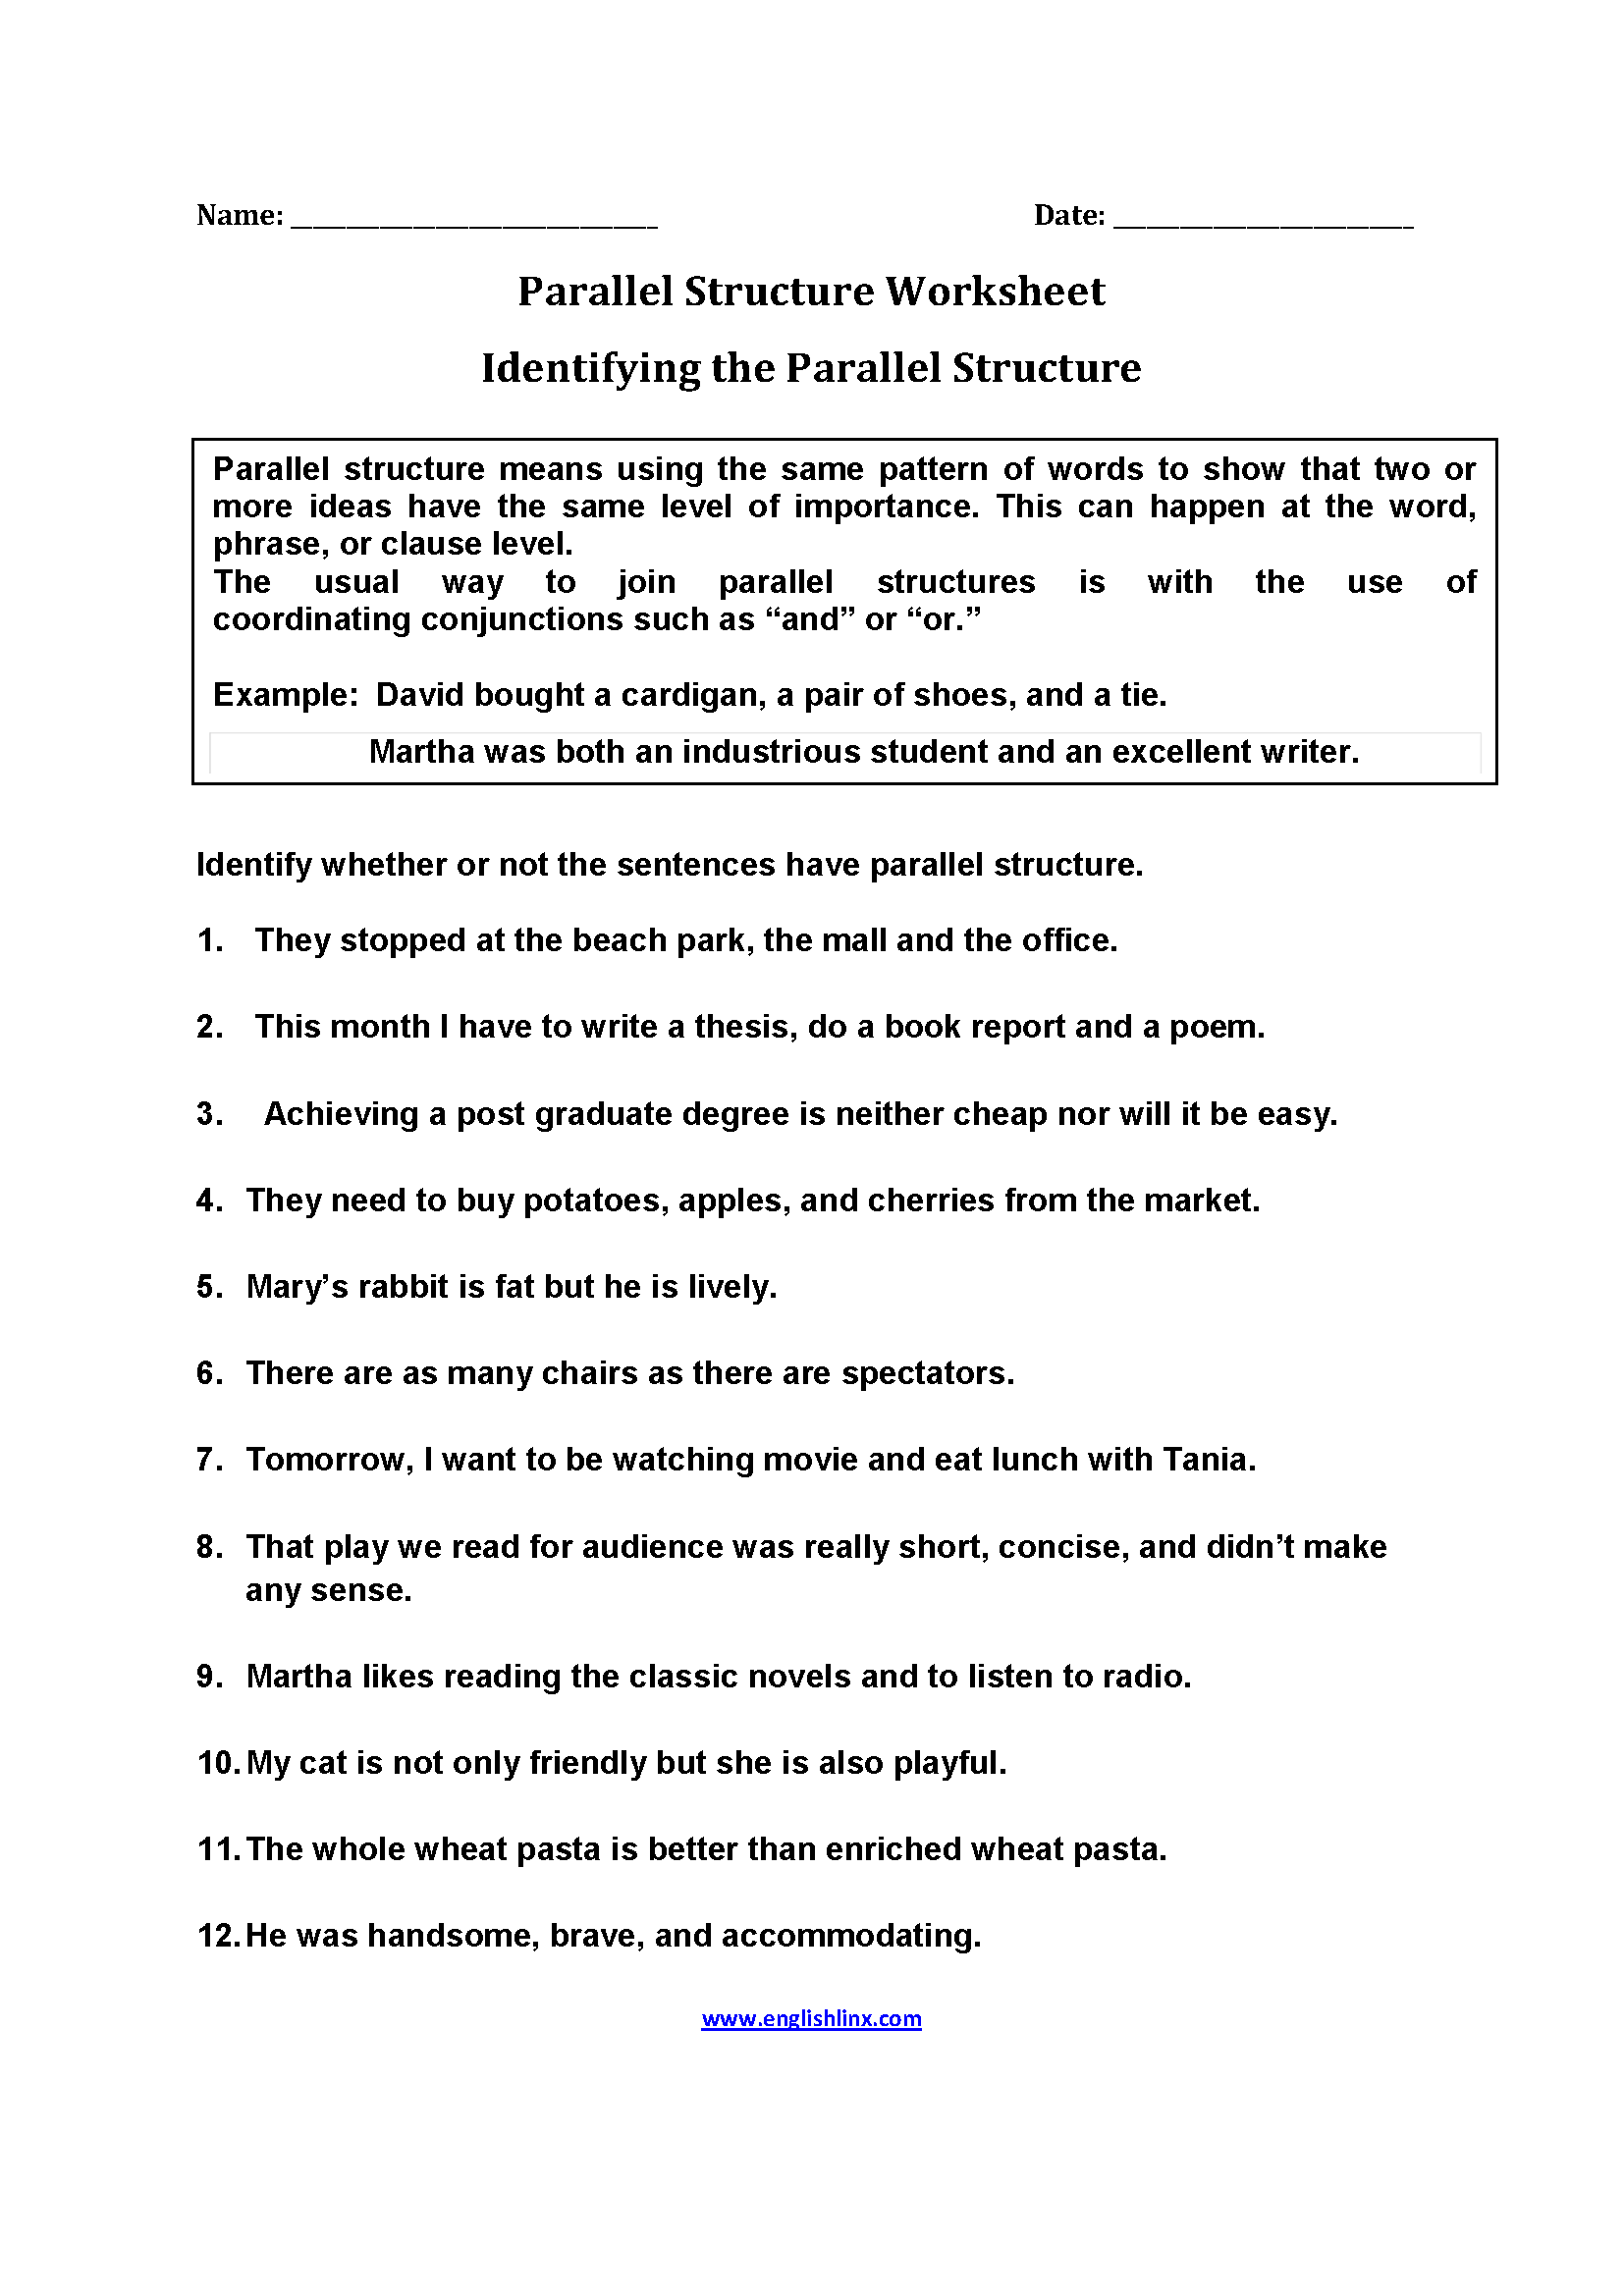 Parallel Structure Worksheets Subject And Predicate Worksheets Subject And Predicate Simple Subject And Predicate